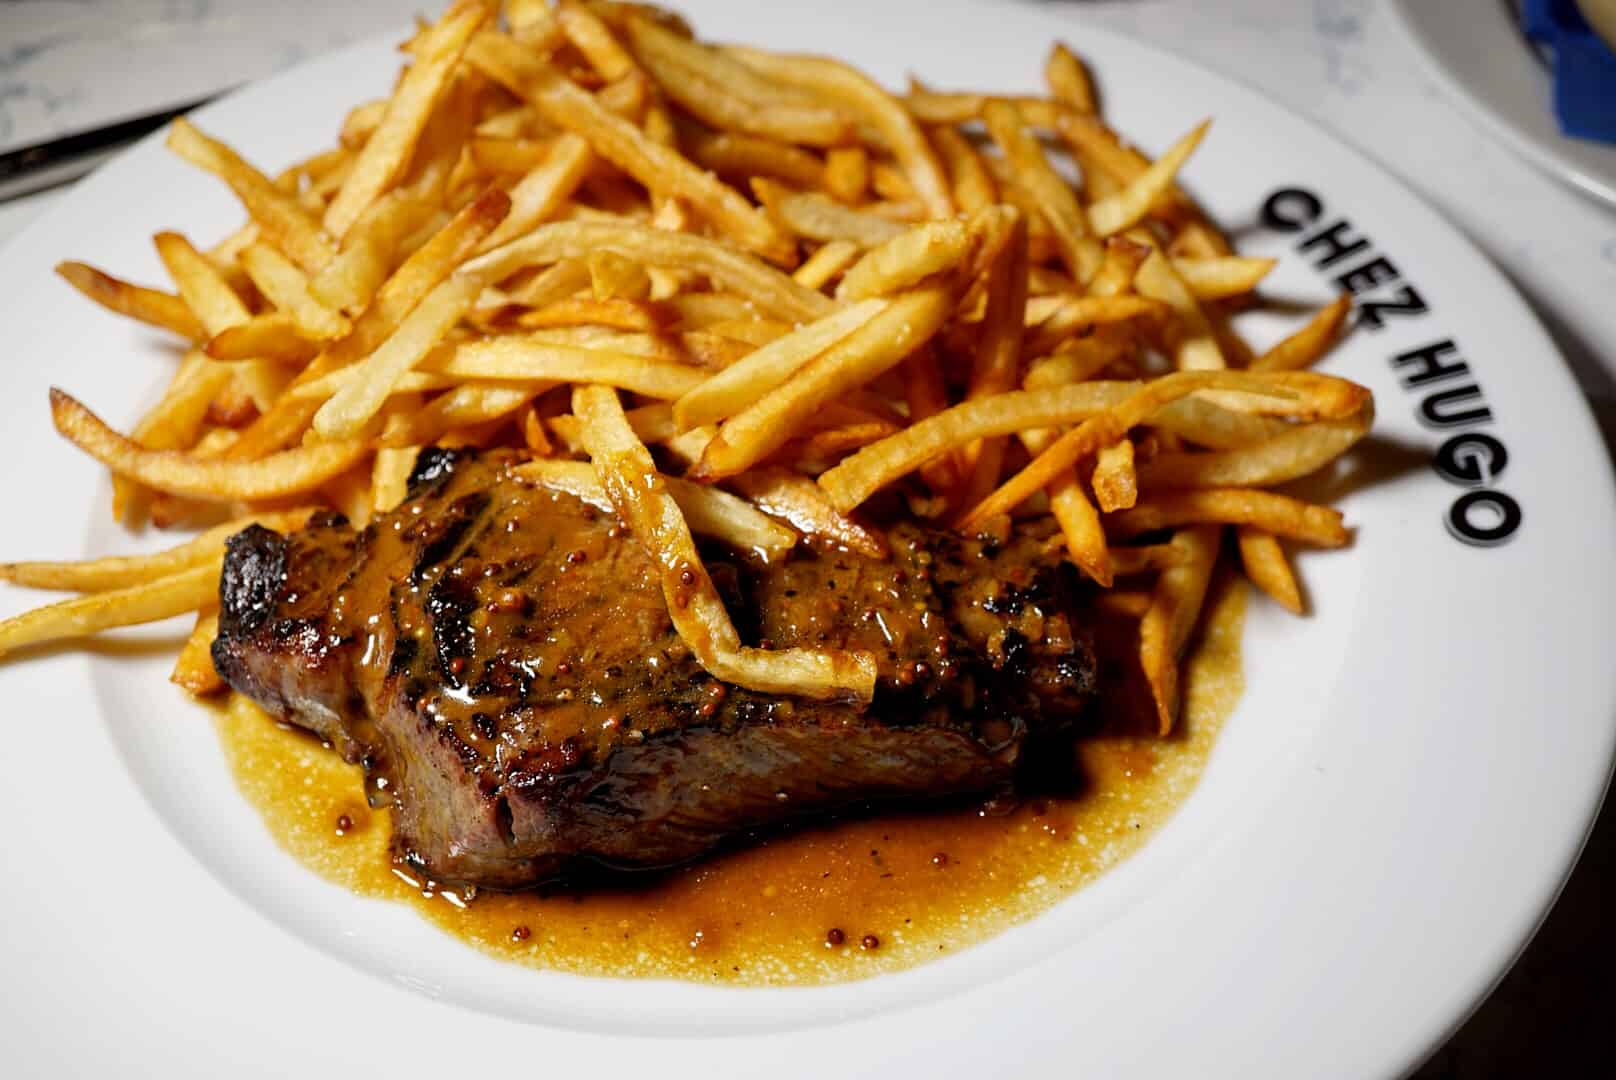 Steak Frites from Baltimore French Restaurant Chez Hugo in Baltimore